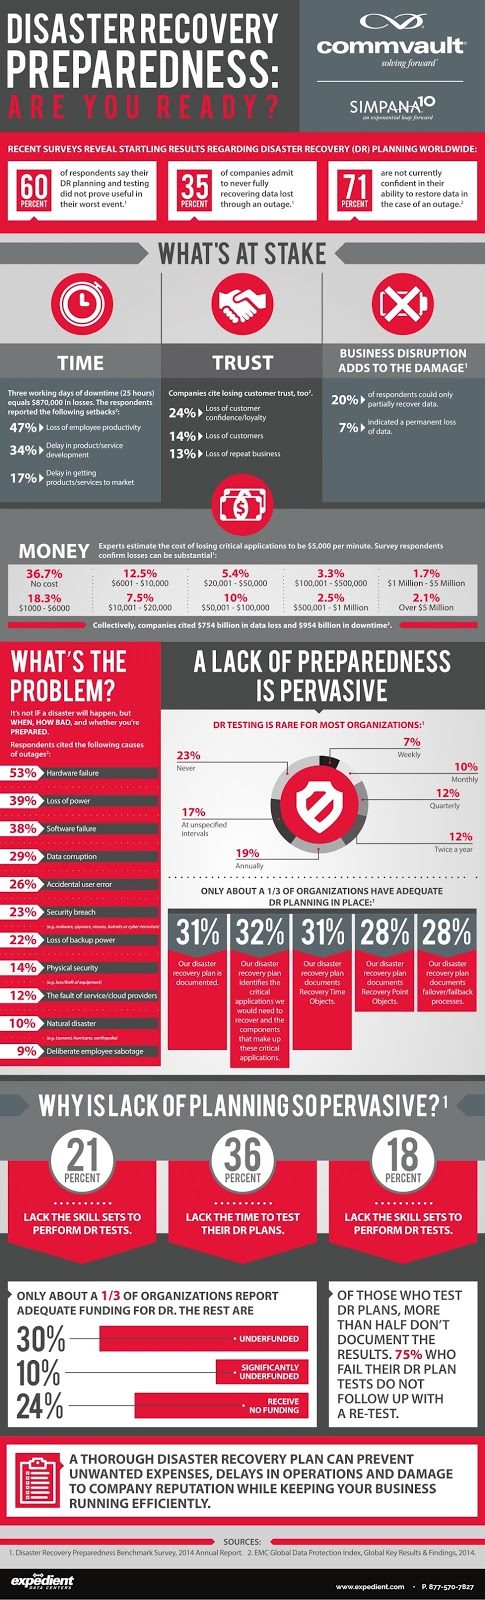 Disaster Recovery Preparedness Infographic